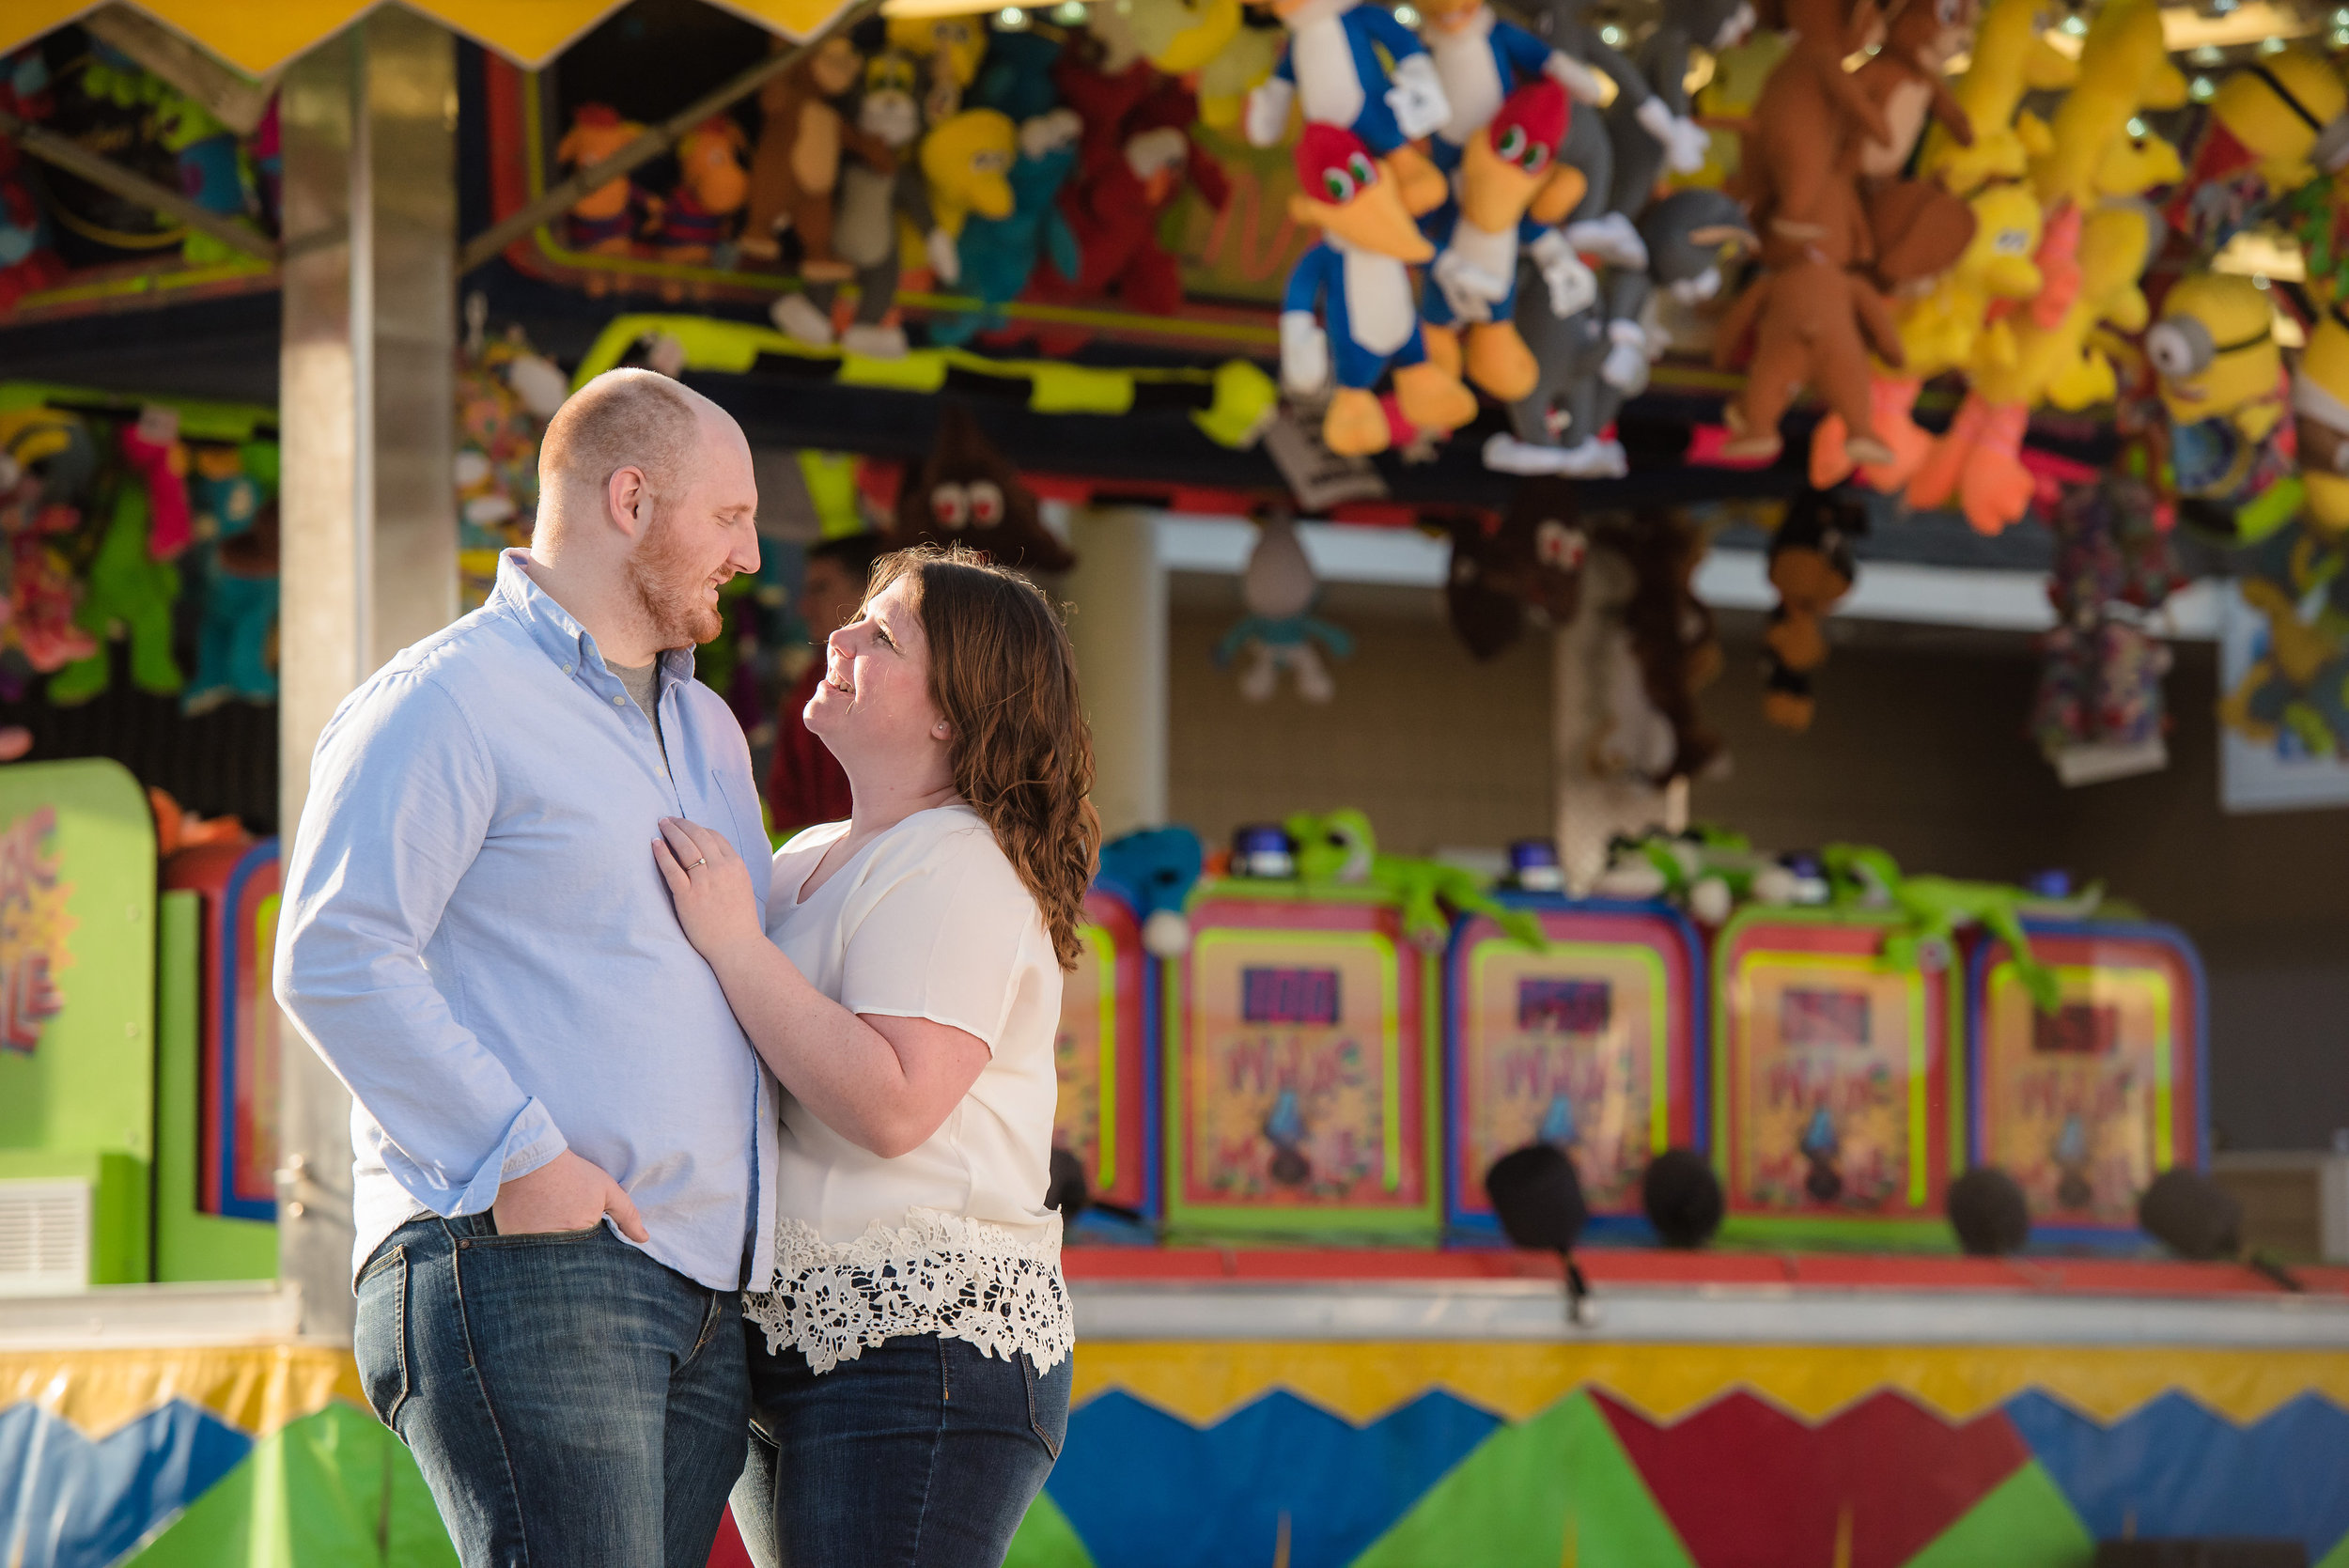 Seaside, NJ Boardwalk & Beach Engagement Photos Jake & Jessica 3